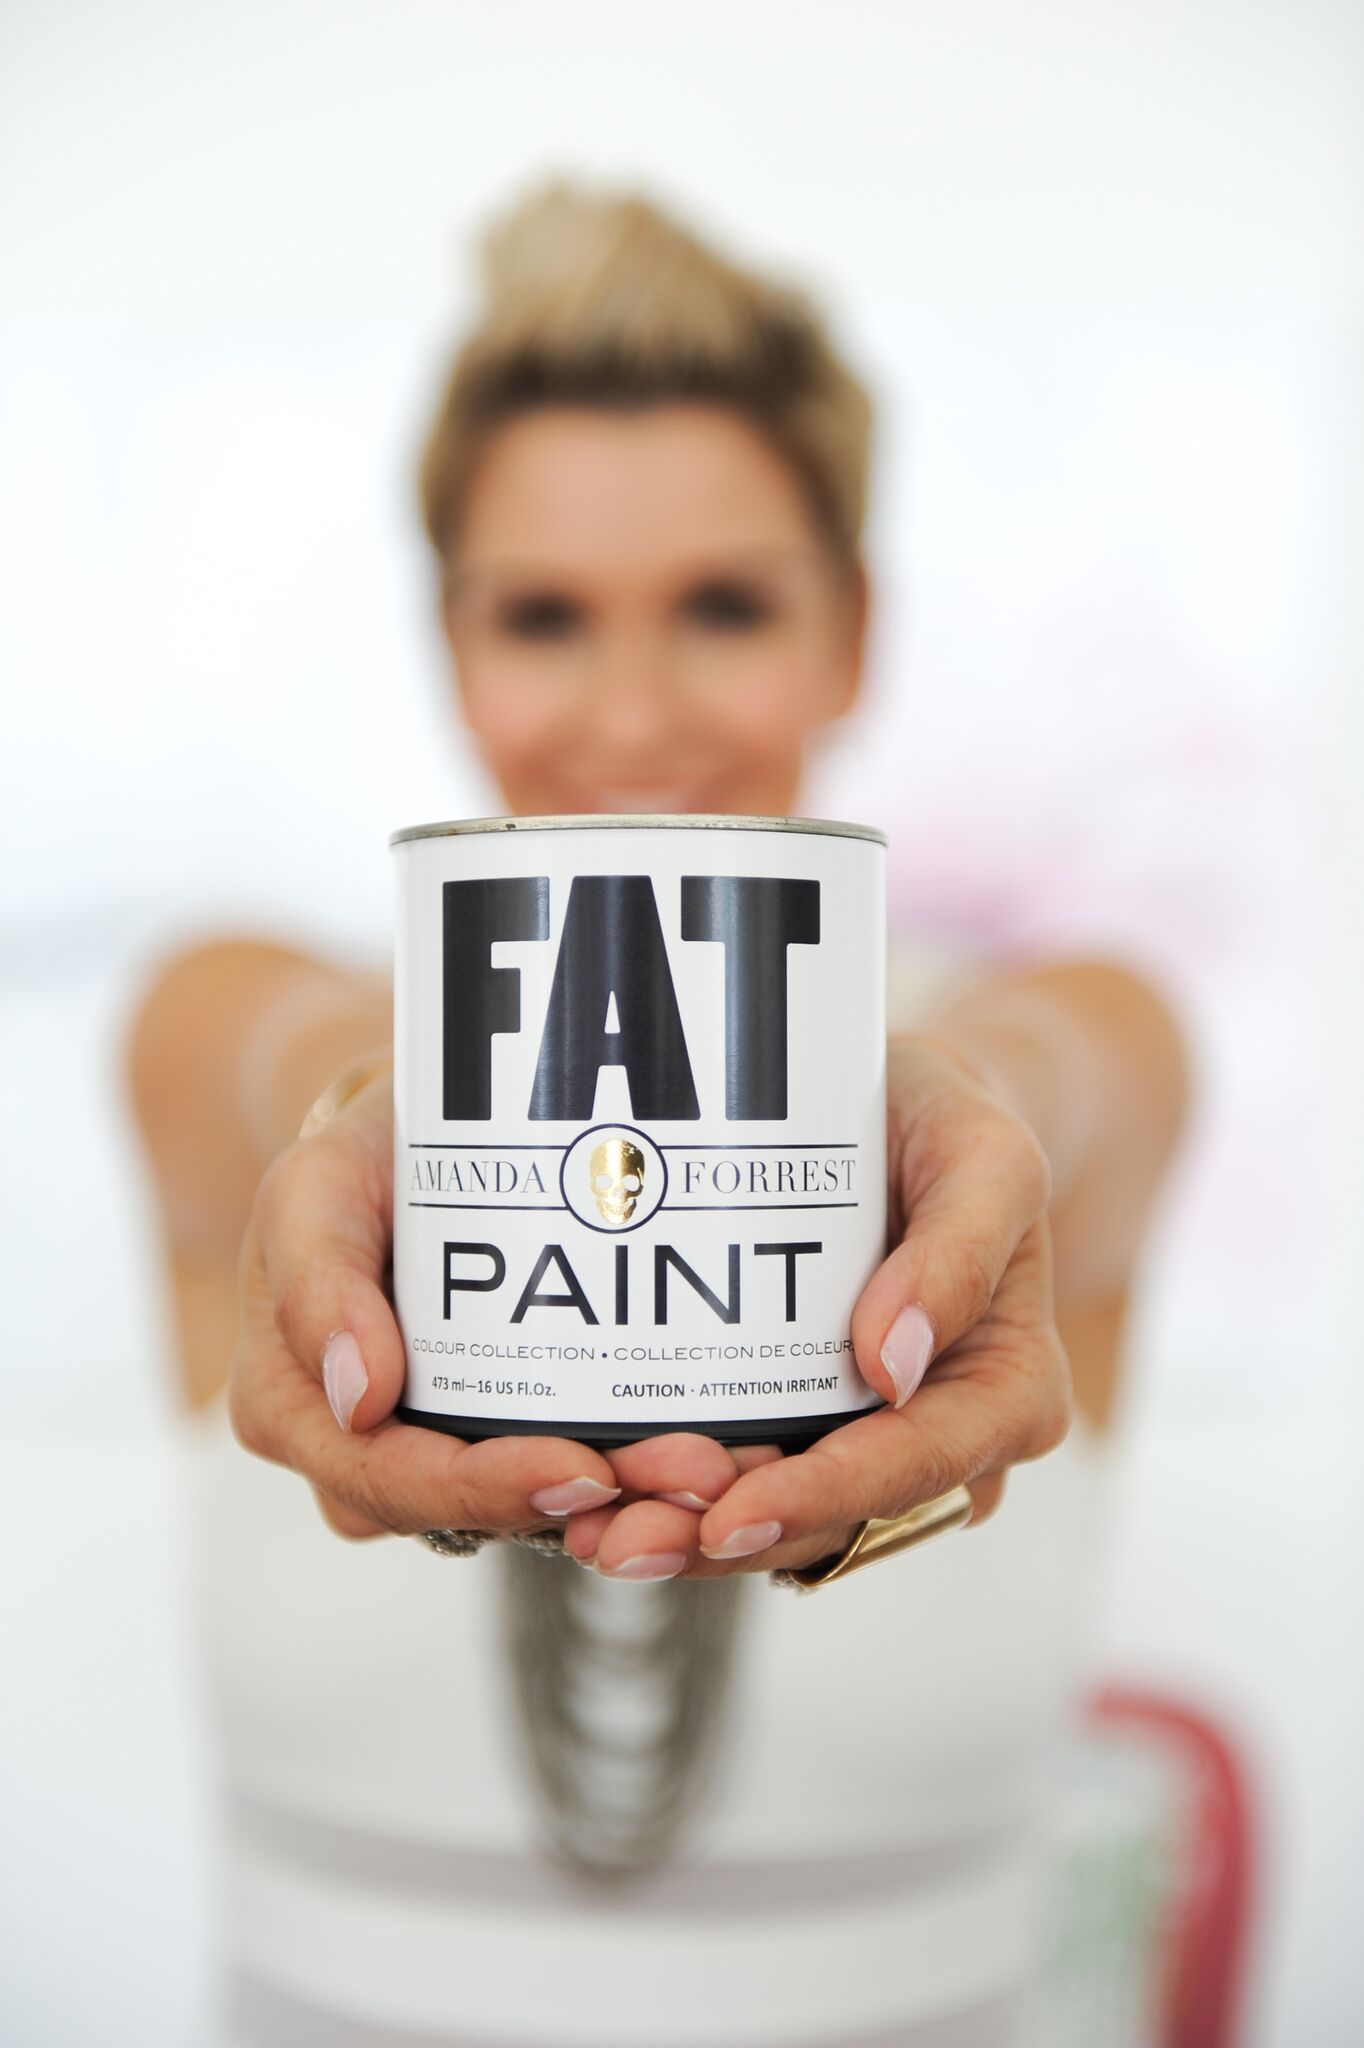 The Amanda Forrest Collection by FAT Paint